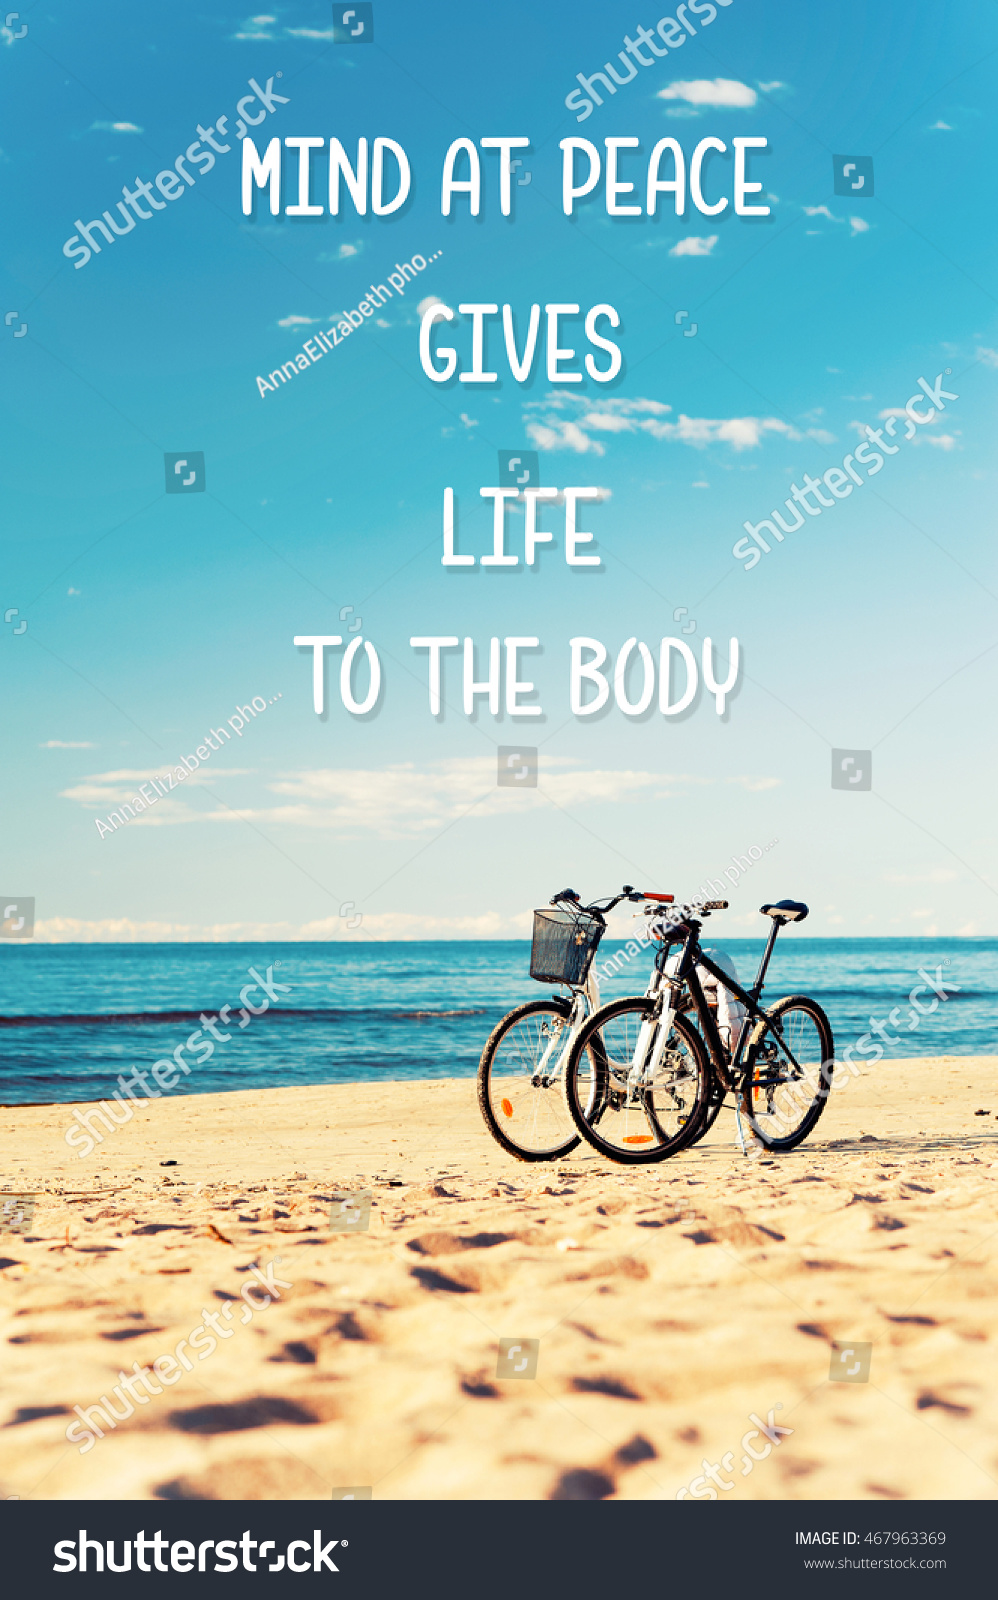 Mind At Peace Gives Life To The Body. Inspirational Motivation Quote With  Two Bicycles On